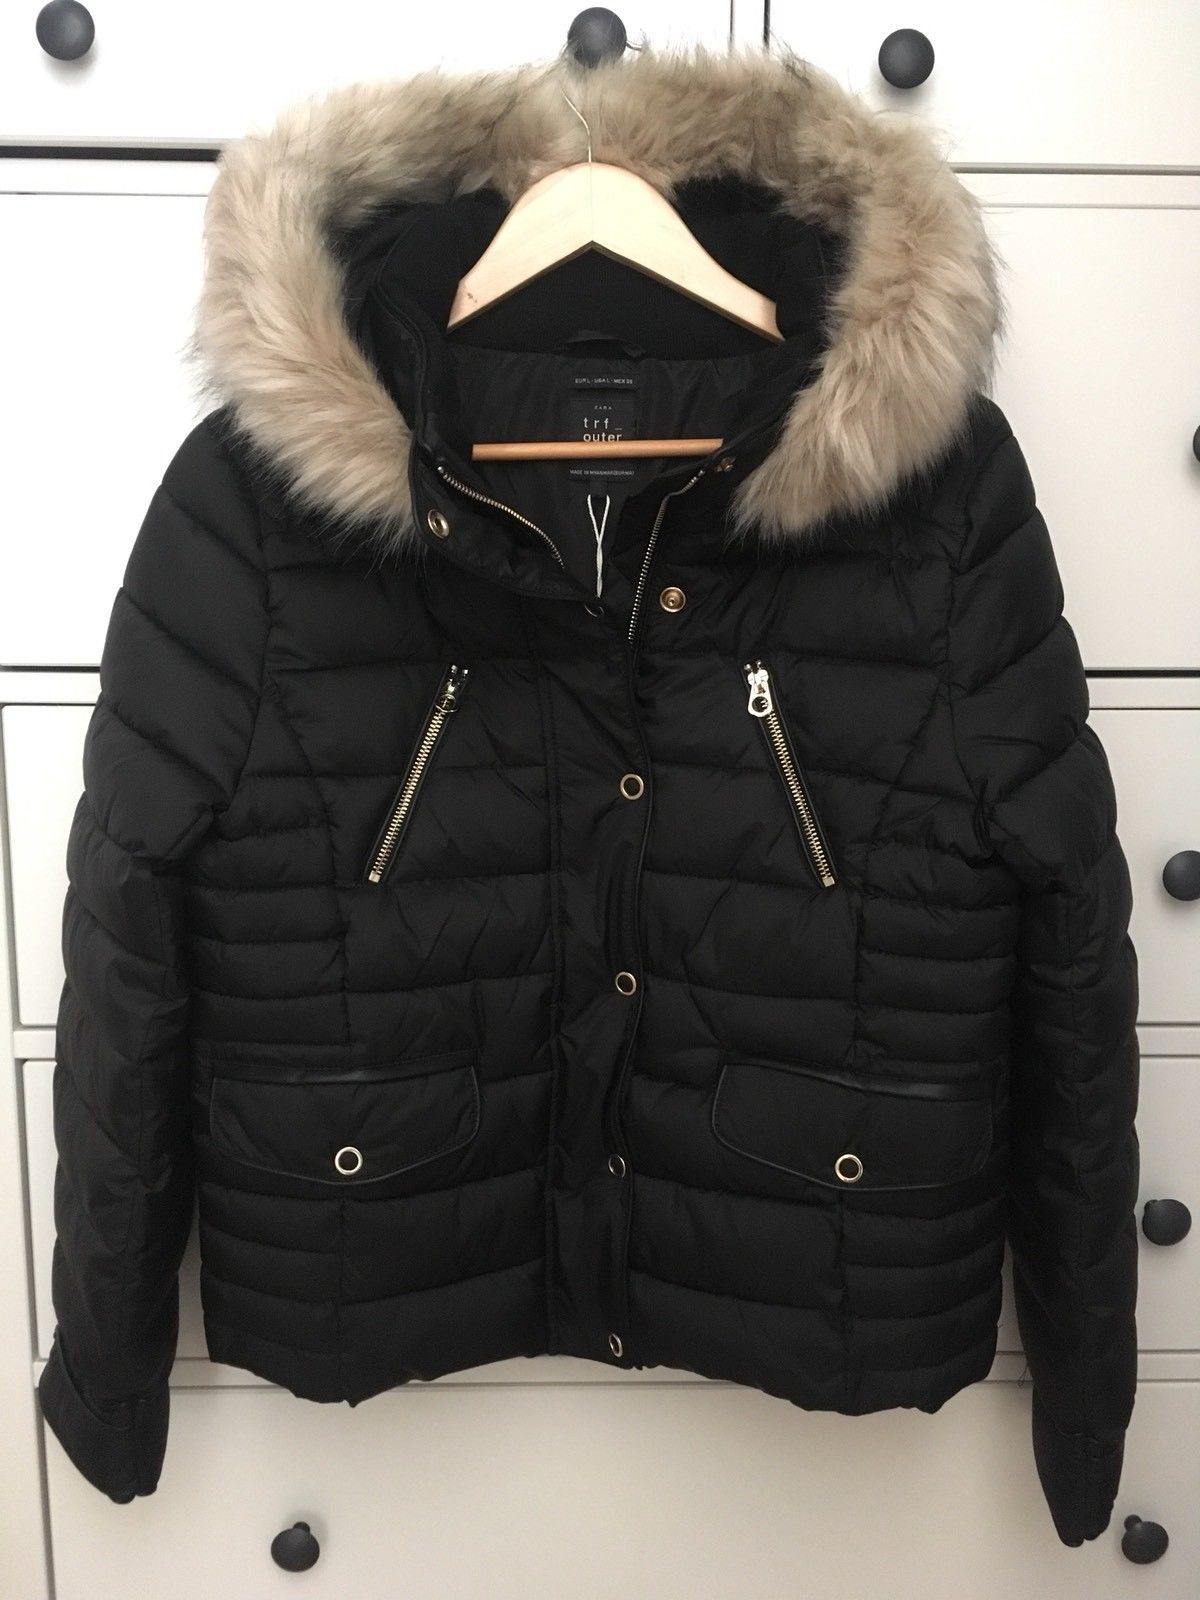 7c12556f092 ZARA BLACK QUILTED JACKET PUFFER ANORAK WITH FAUX FUR HOOD, SIZE S.   eBay